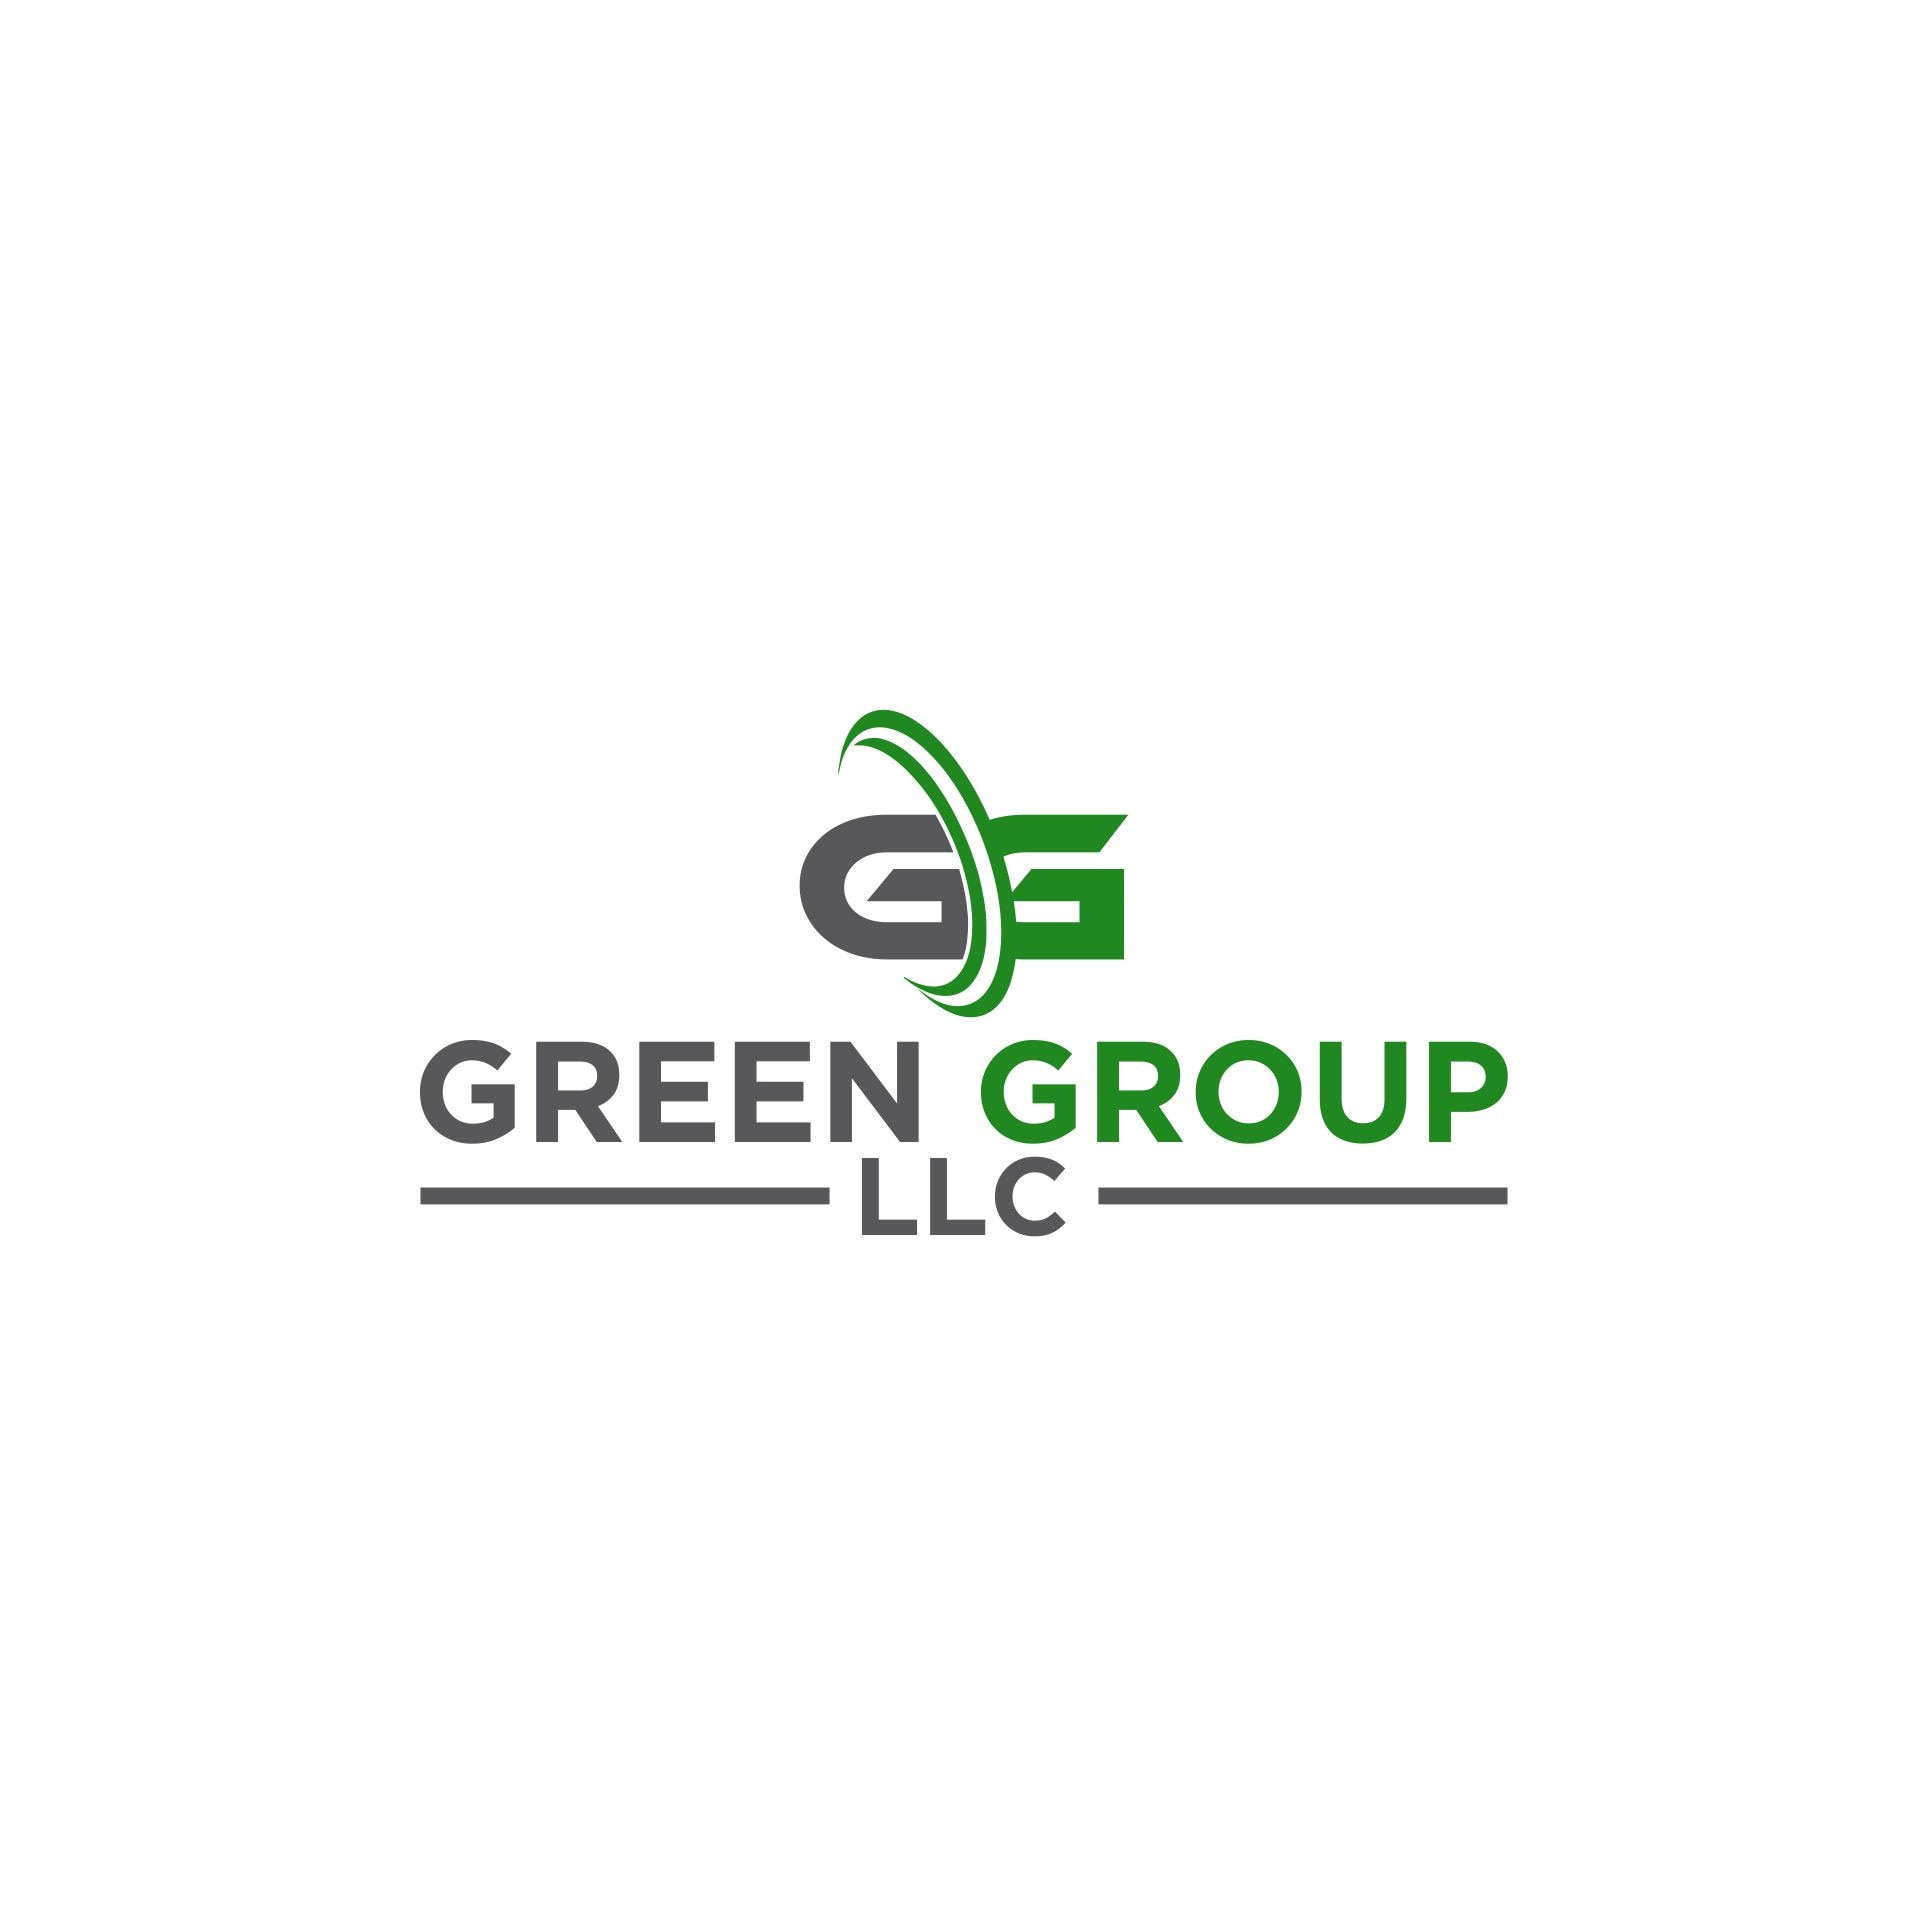 The Green Group  logo